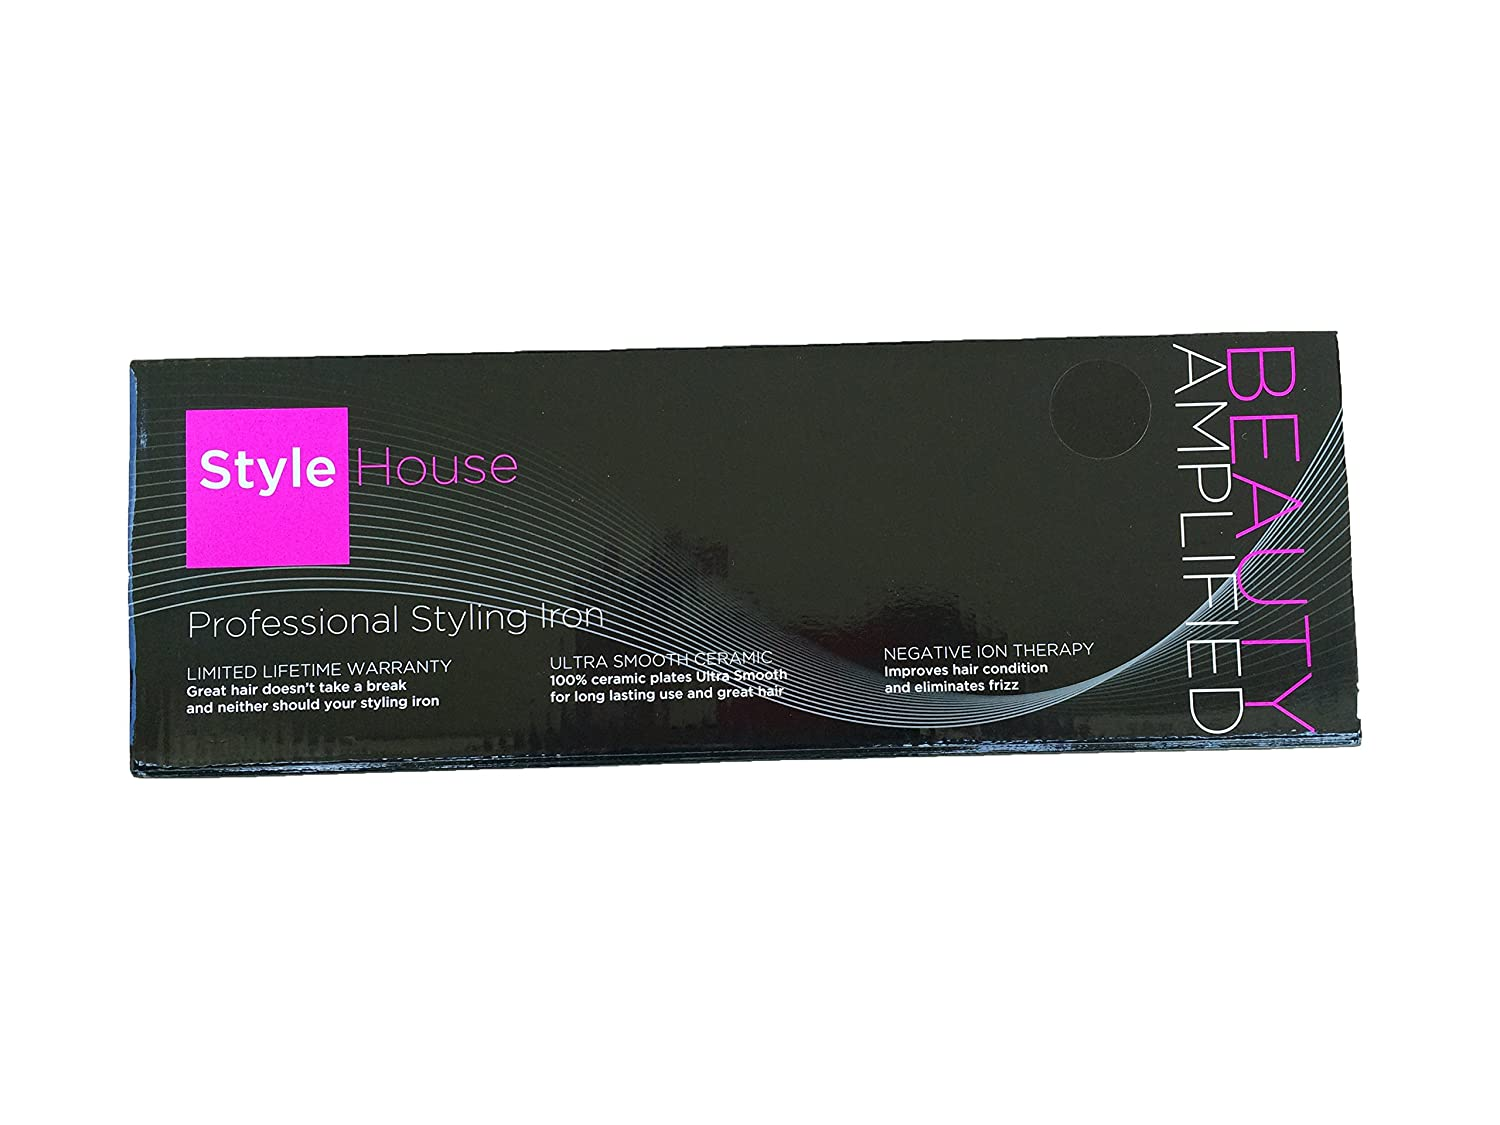 Style House 1645618 Professional Styling Iron Black Hair Straightener Curler